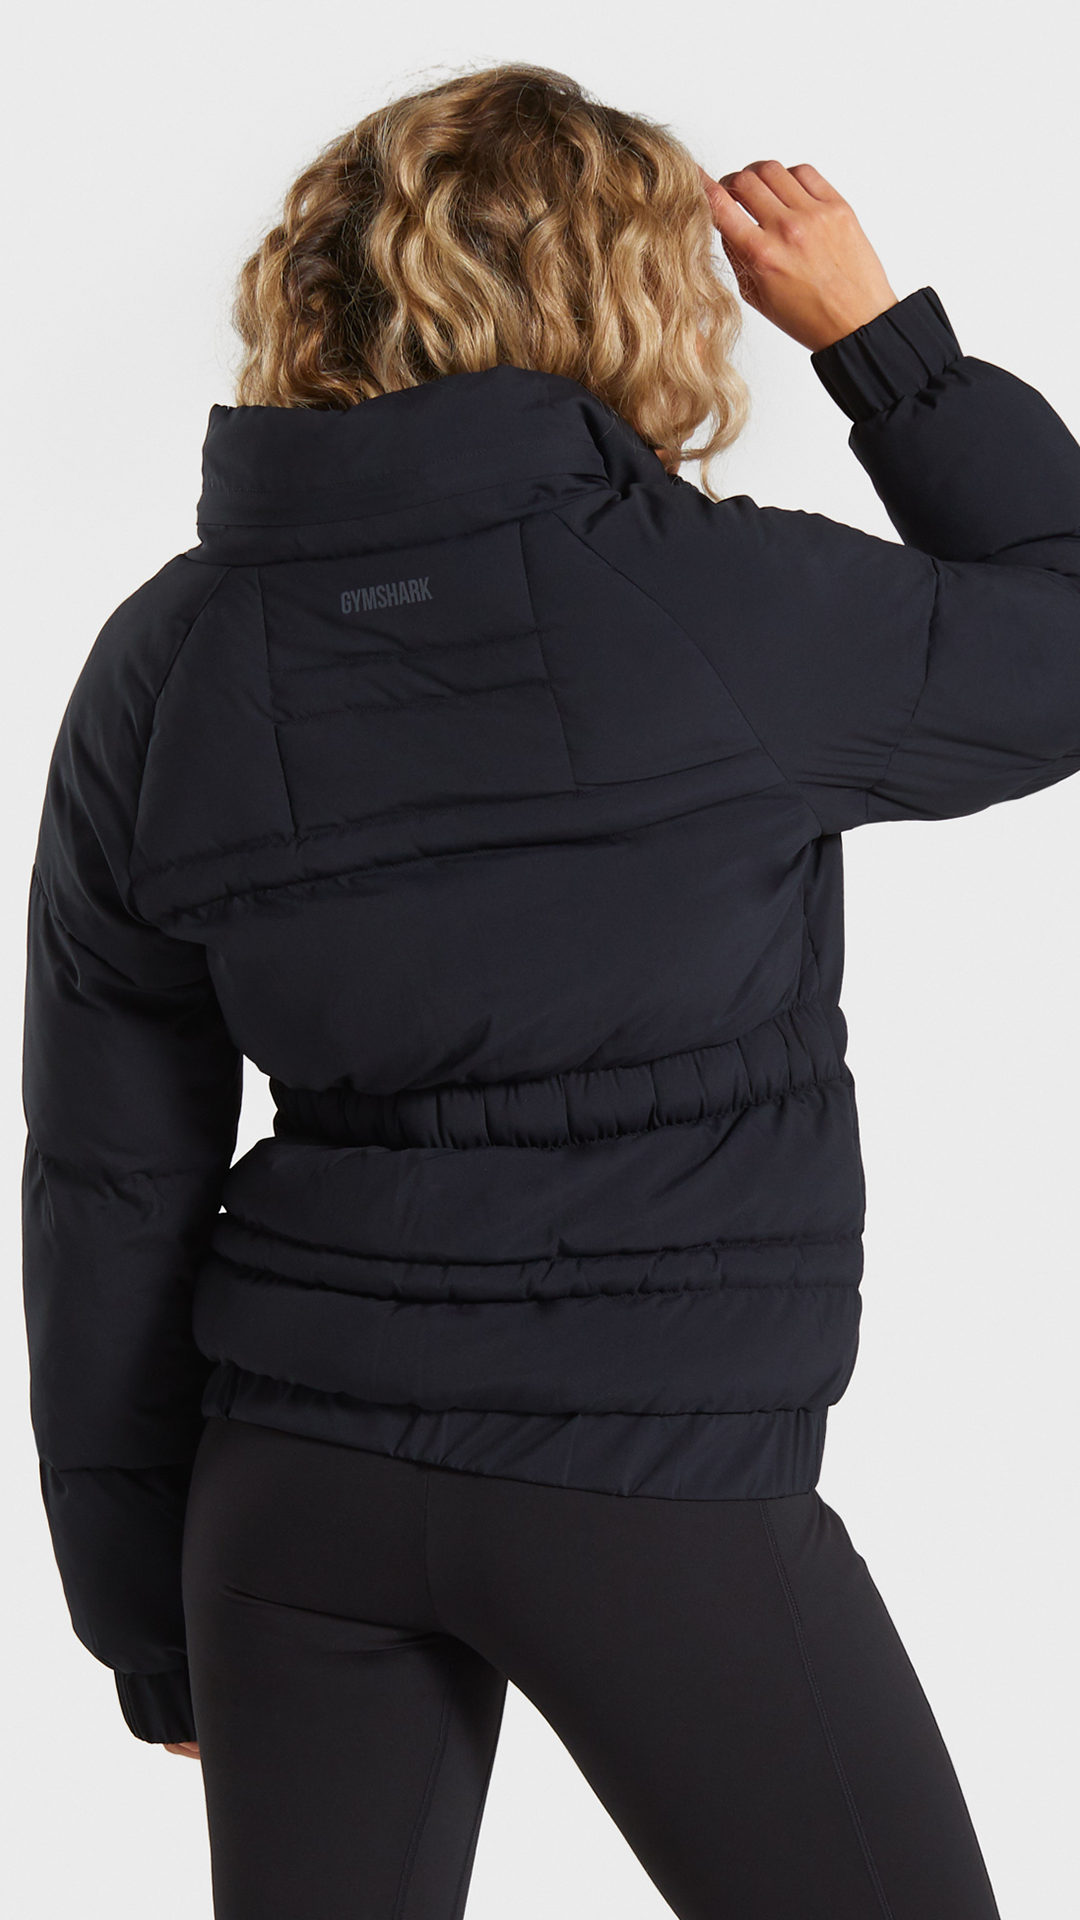 The Puffer Jacket Gymshark Gym Sweat Train Perform Seamless Exercise Strength Strong Power Fitness Out Puffer Jacket Women Gymshark Puffer Jackets [ 1920 x 1080 Pixel ]